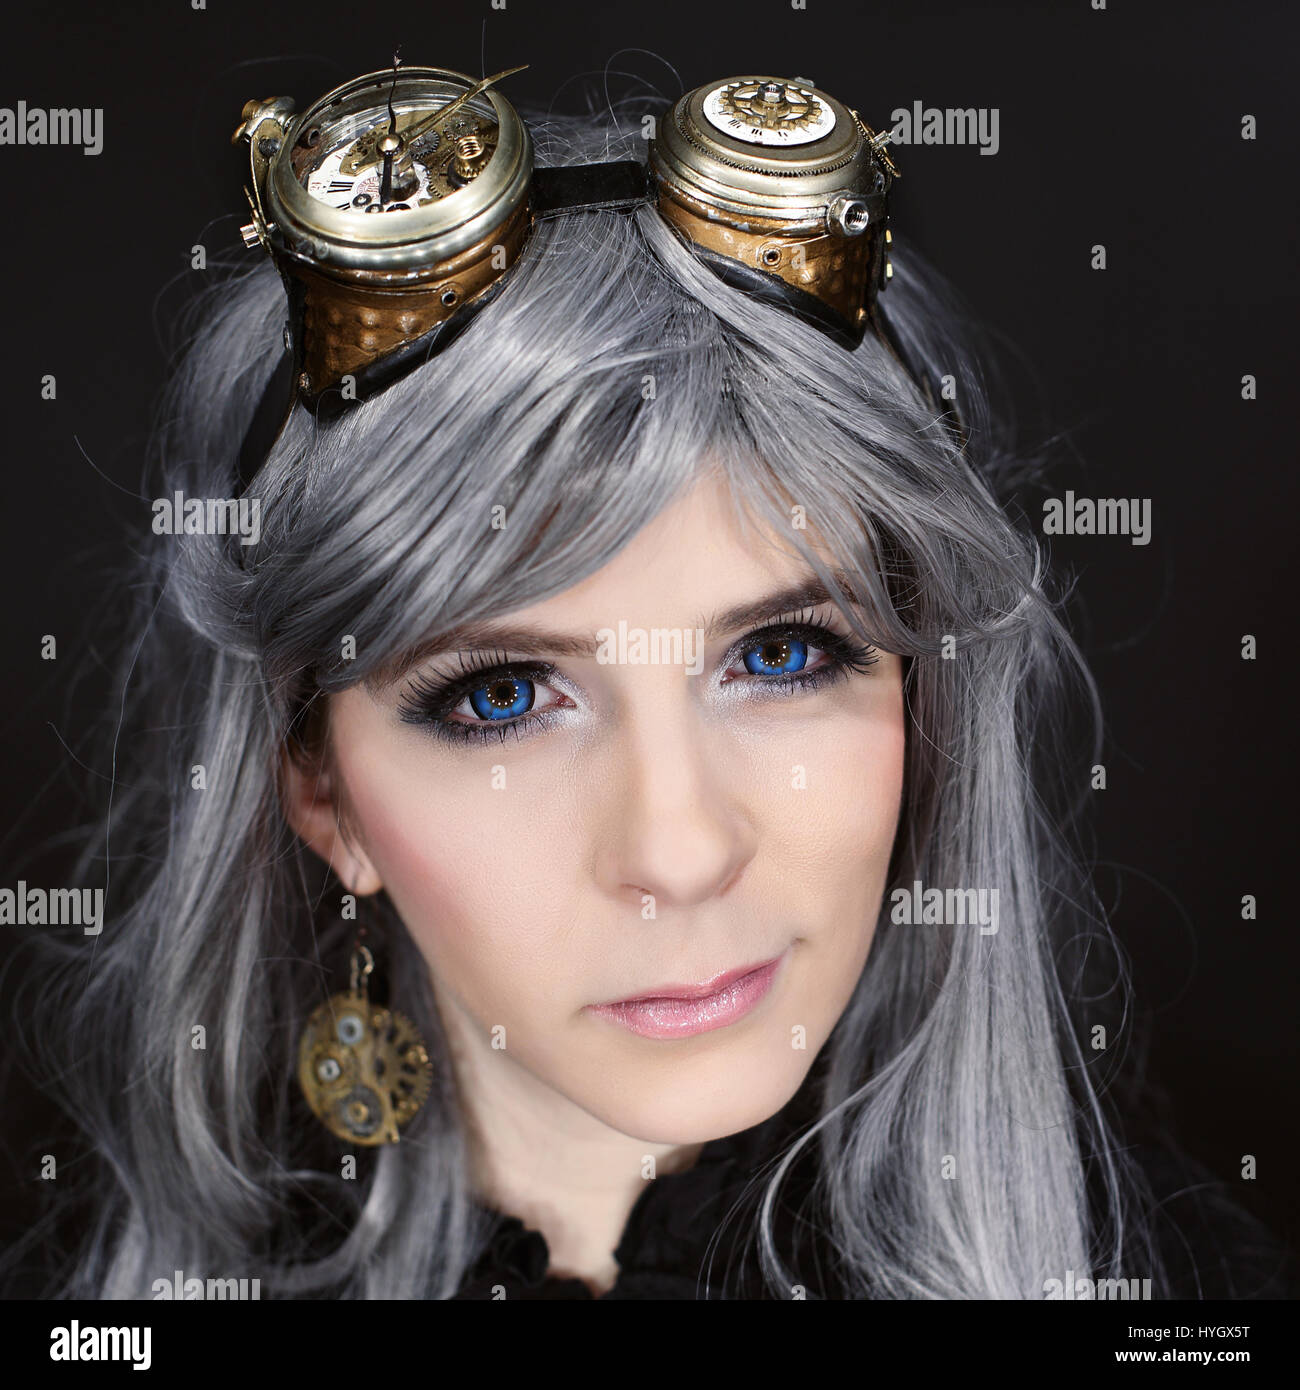 Beautiful woman portrait with steampunk glasses - Stock Image